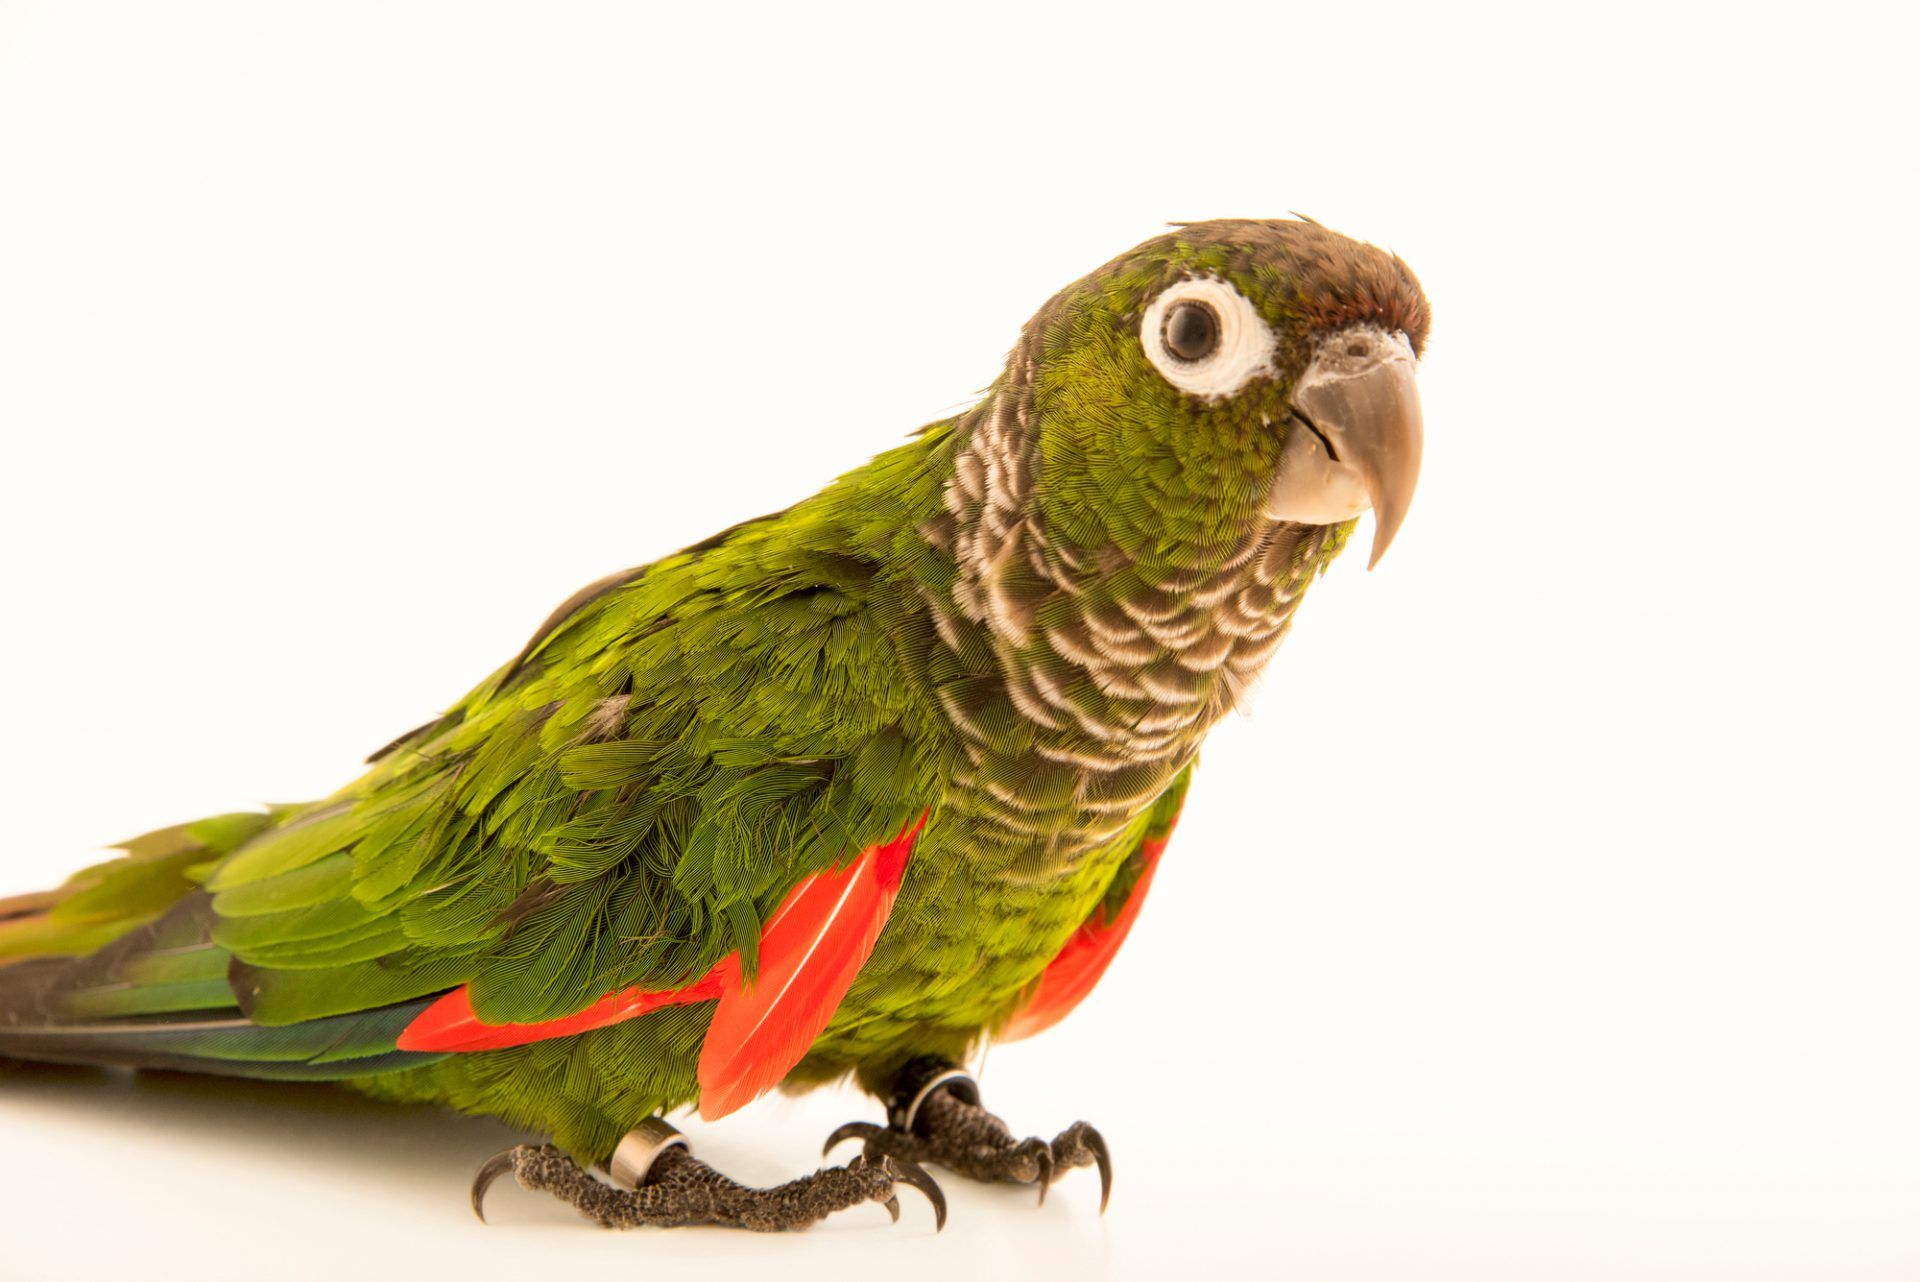 Photo: Maroon tailed parakeet (Pyrrhura melanura souancei) at Loro Parque Fundacion.